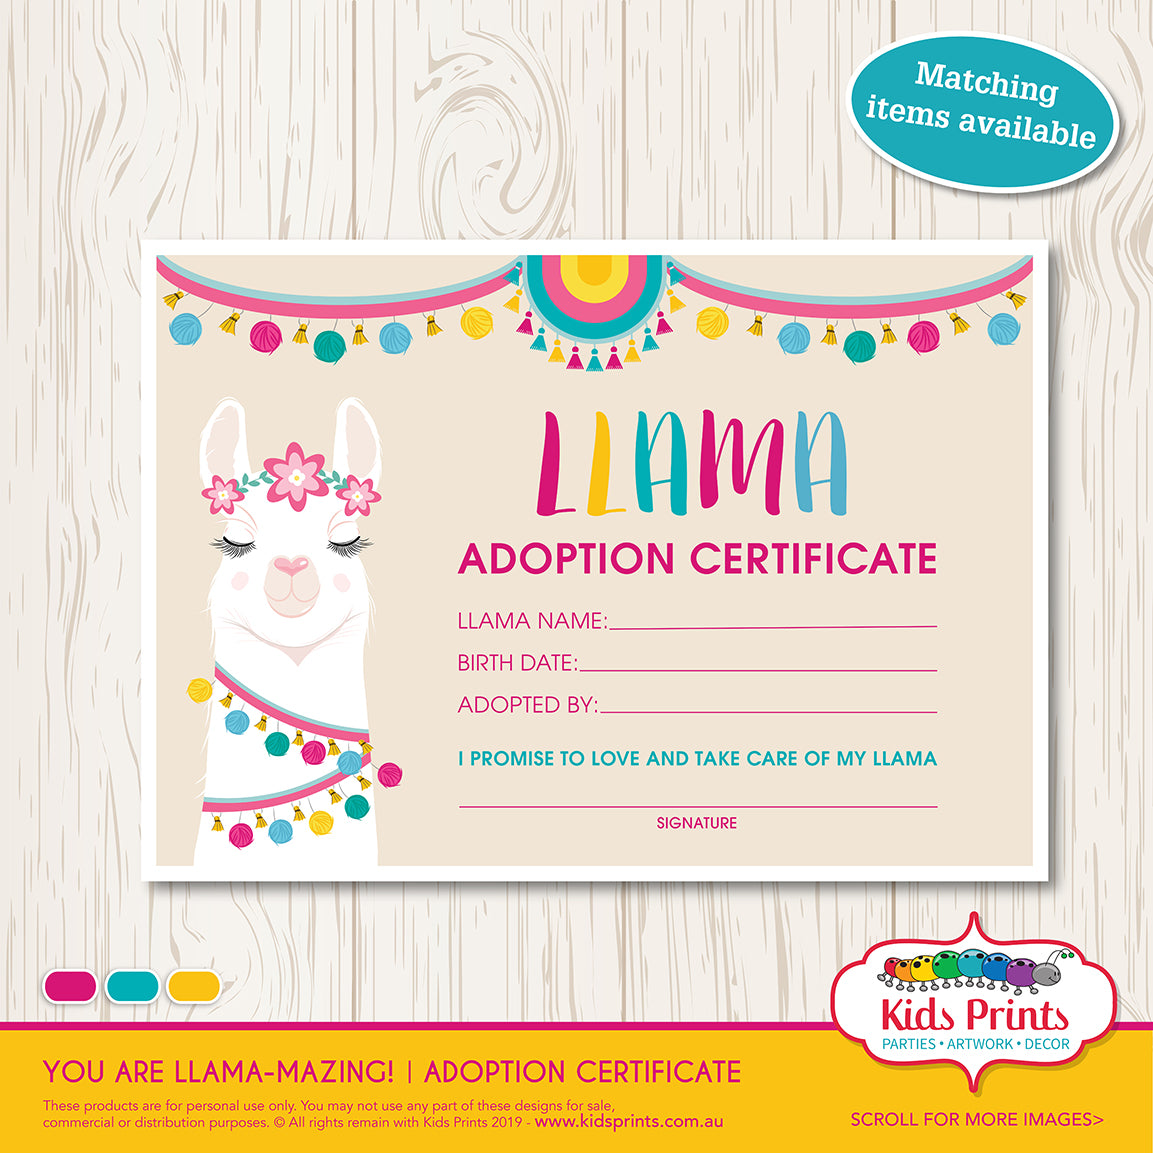 Llama Party | A4 Adoption Certificate - Kids Prints Online